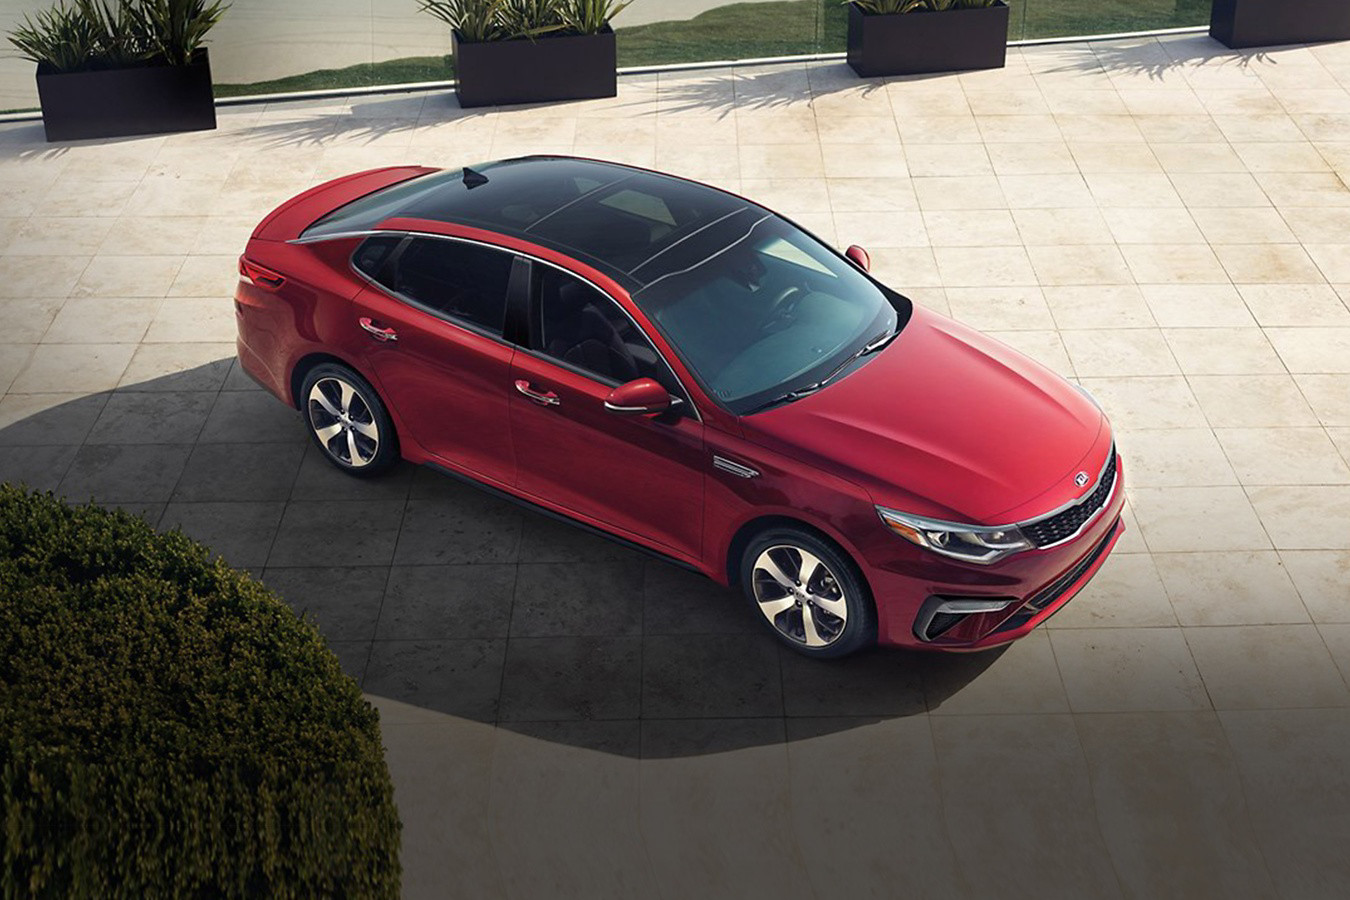 2020 Kia Optima Lease in San Antonio, TX